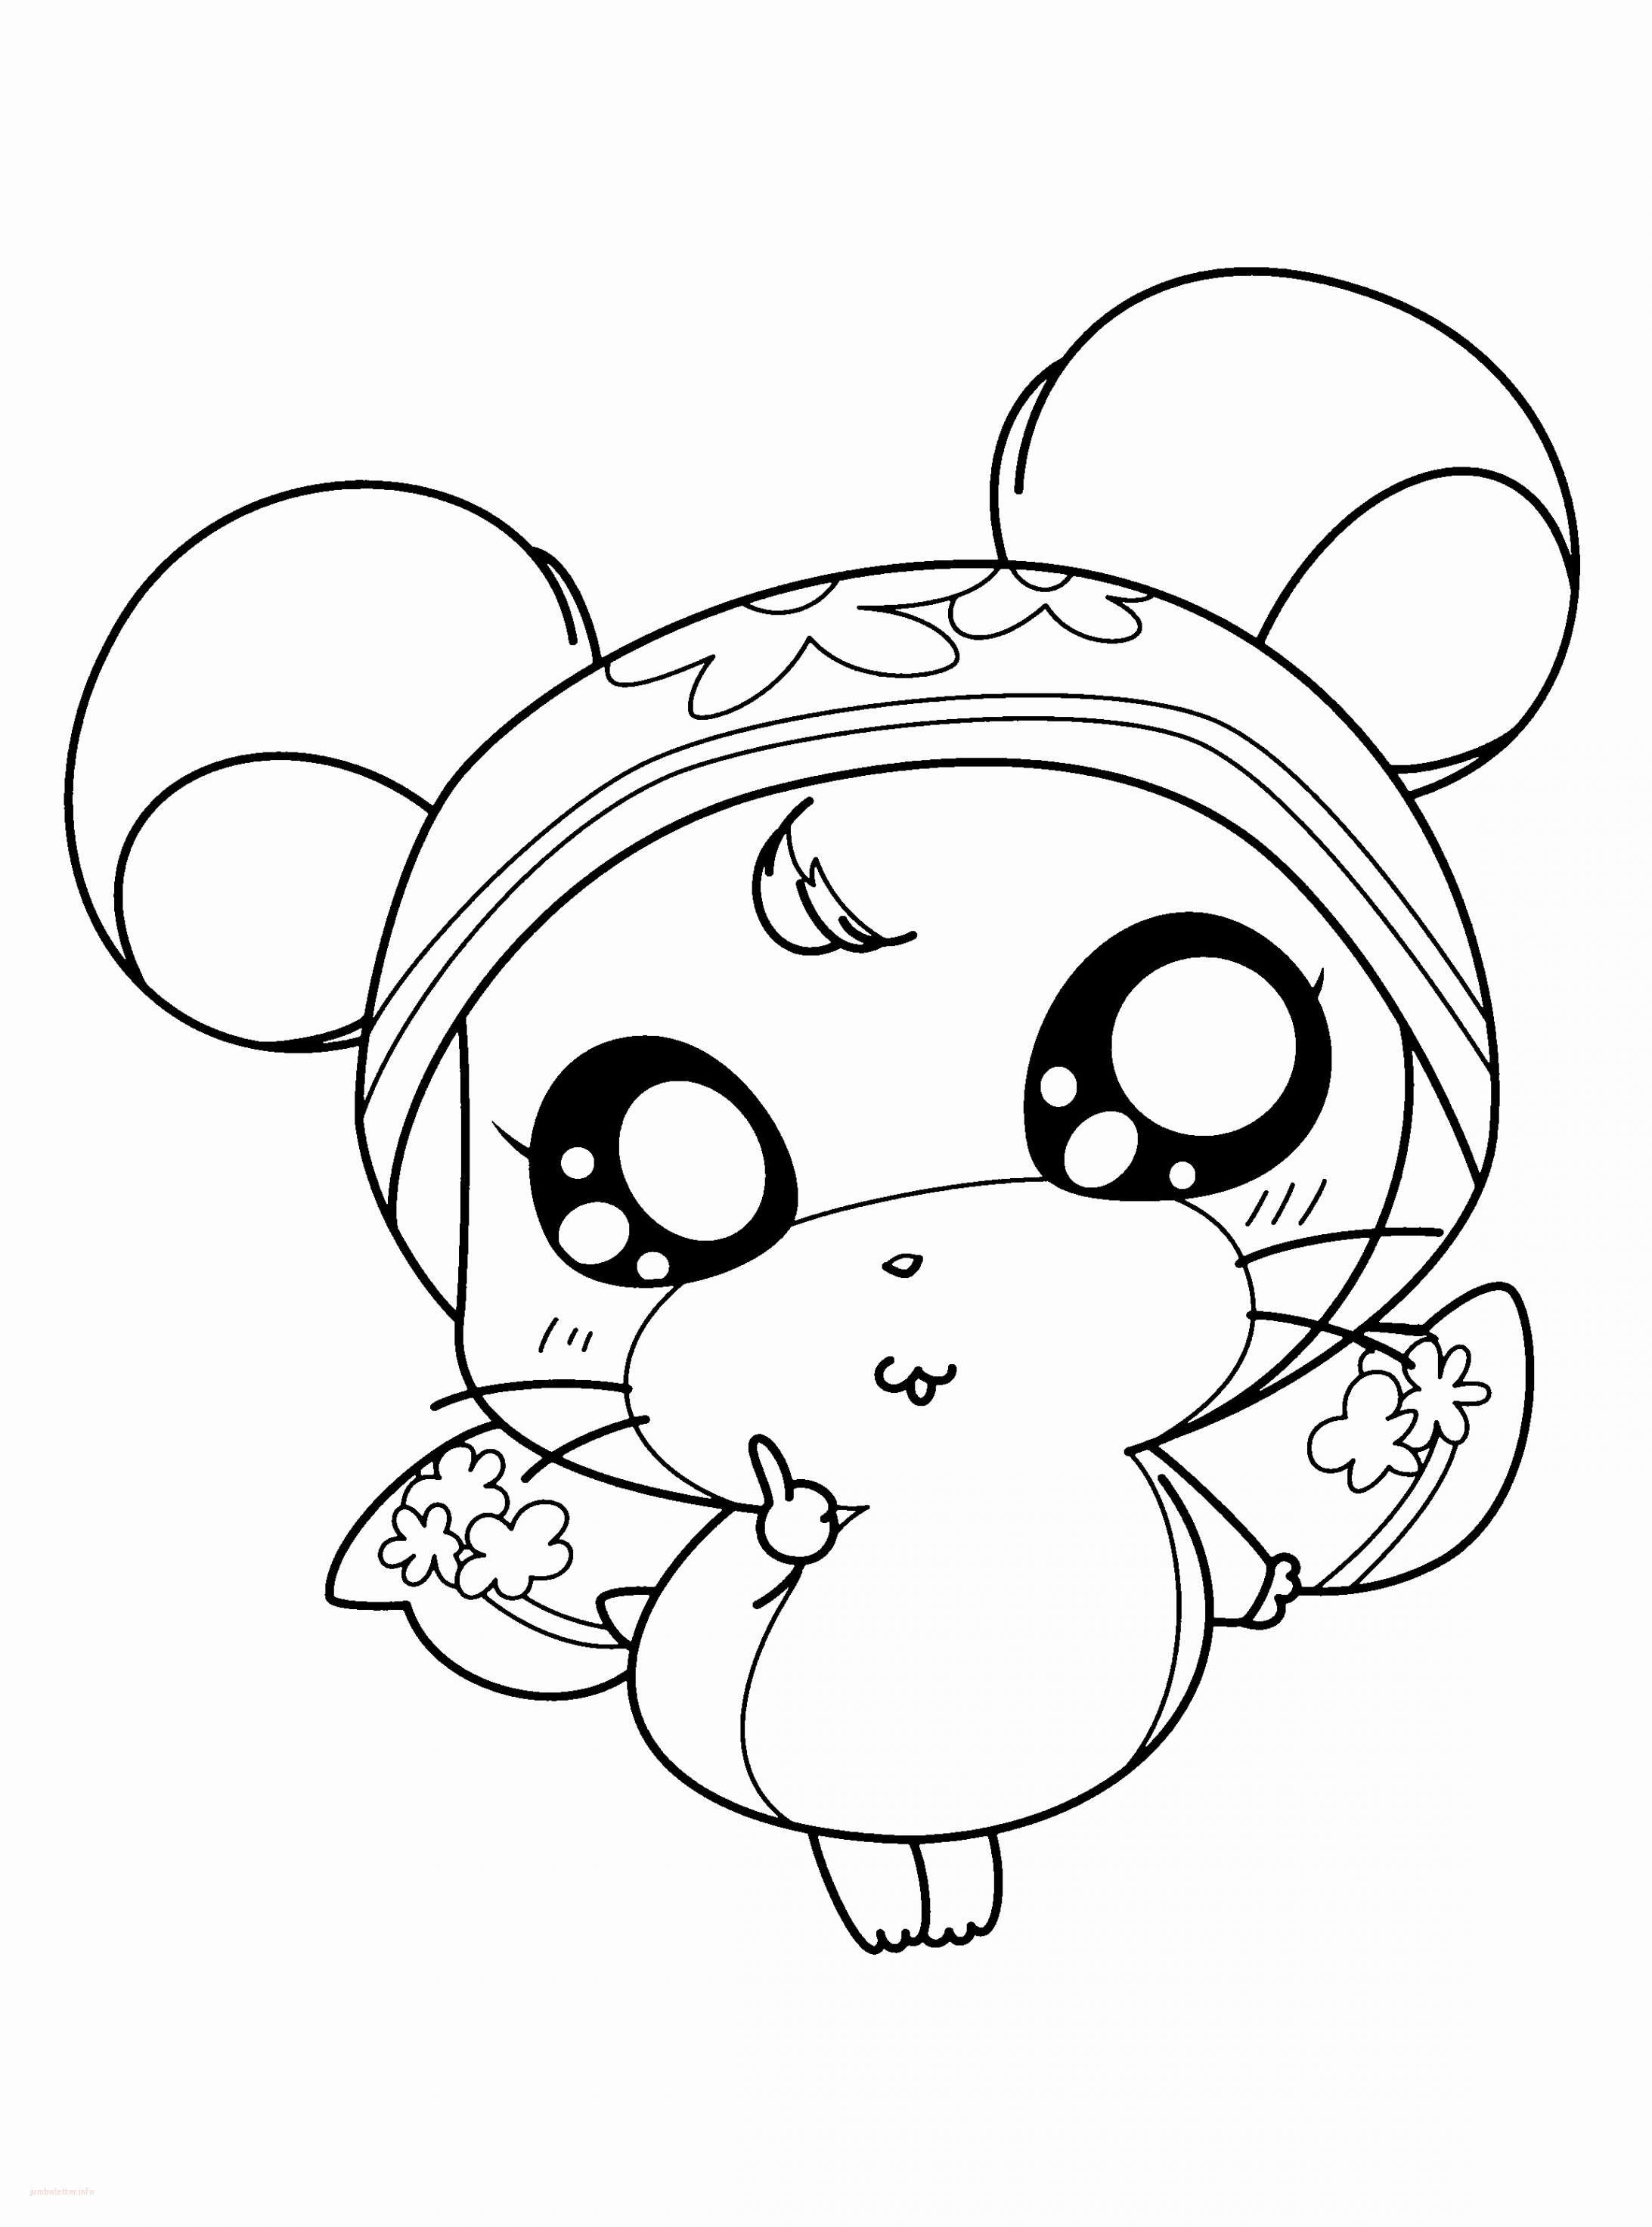 Christmas Coloring Pages Cartoon Characters With Online Best Disney Printable